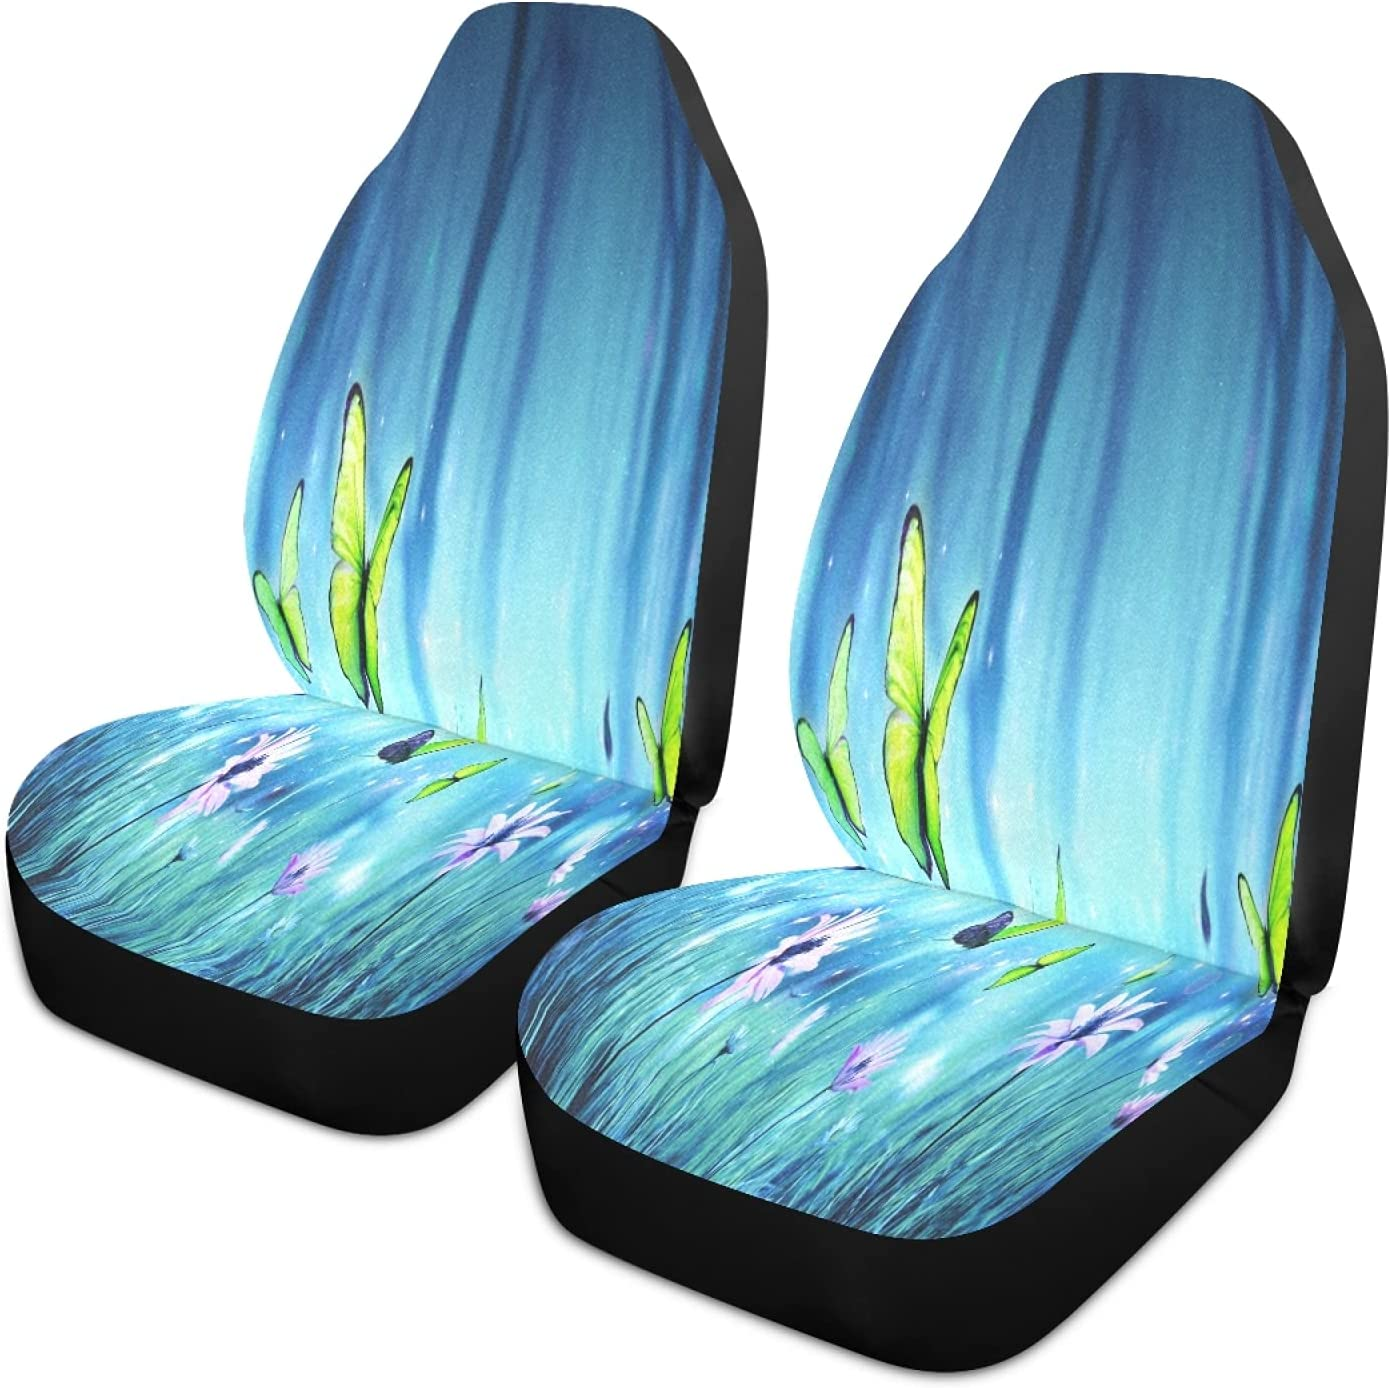 xigua 2PCS Beautiful Forest Max 60% OFF Butterfly Anti Covers Front 25% OFF Car Seat